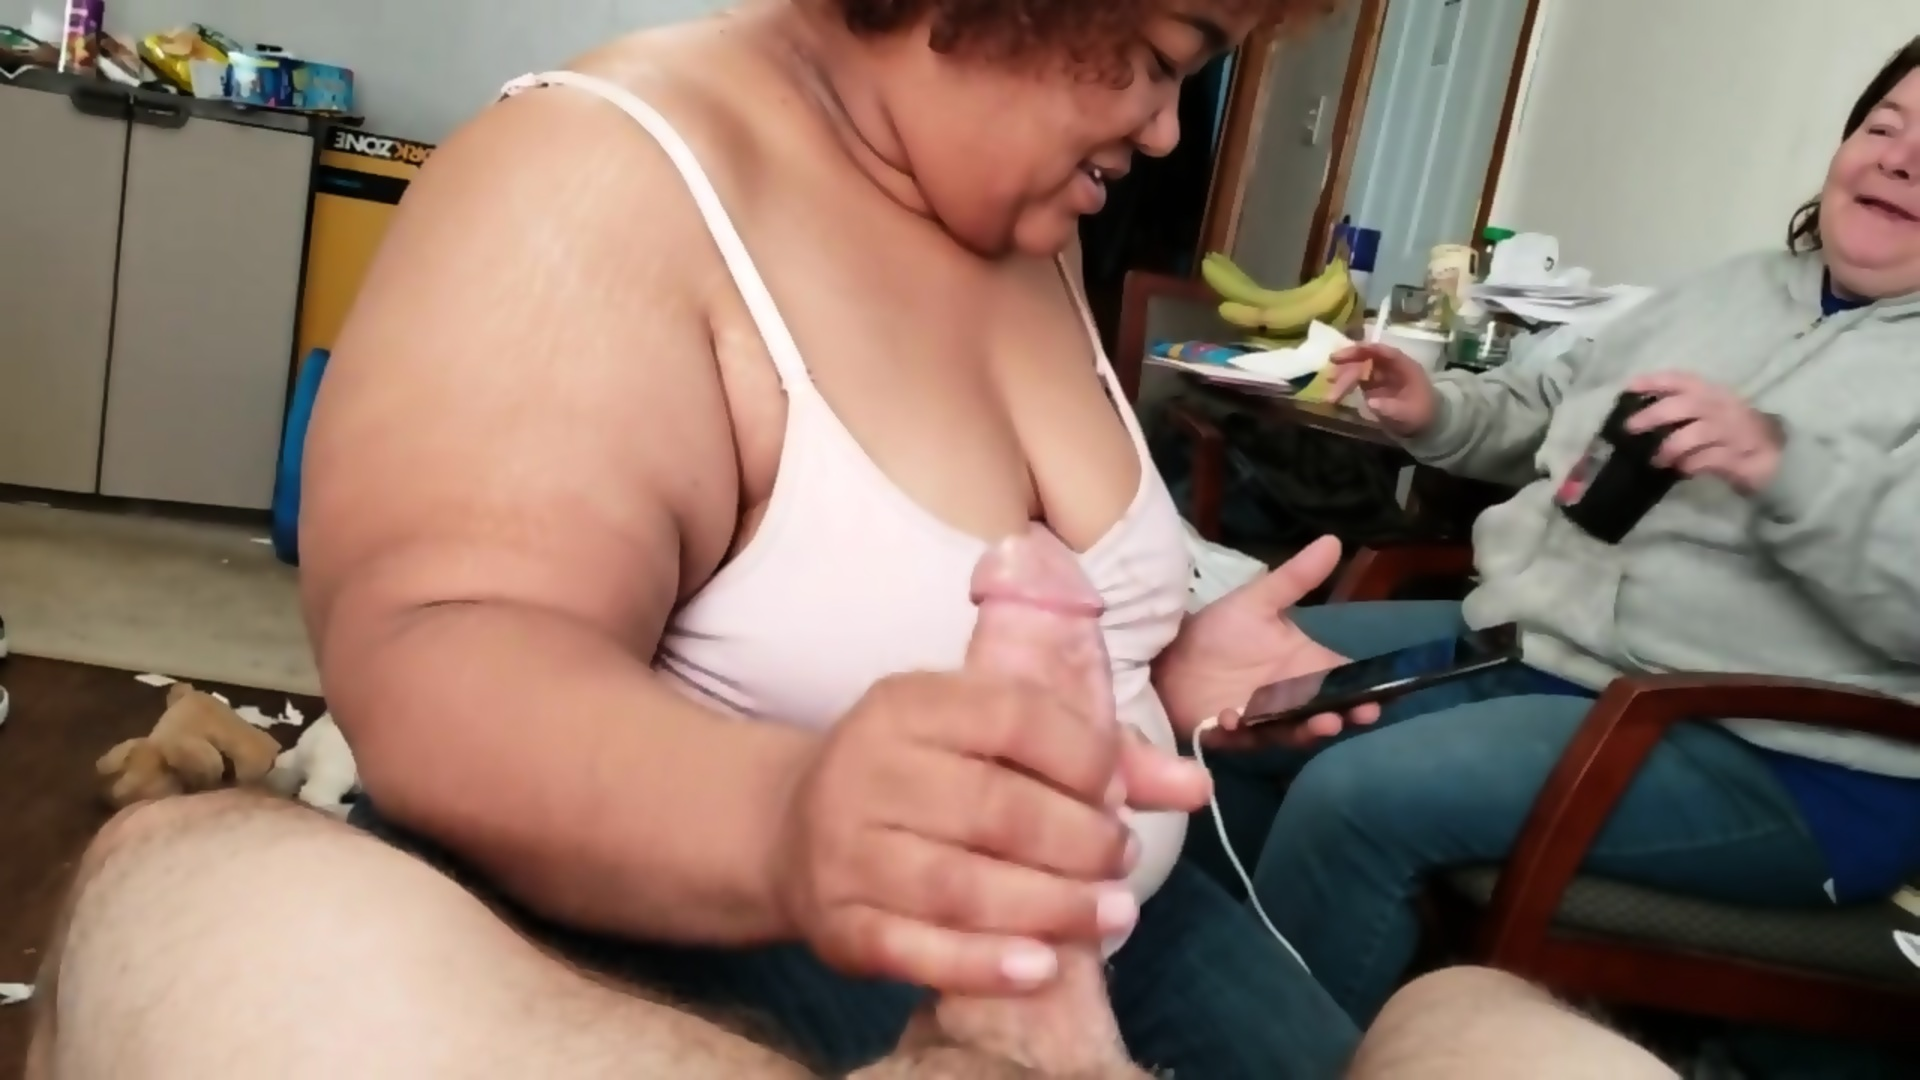 Me Cum Watched She#7